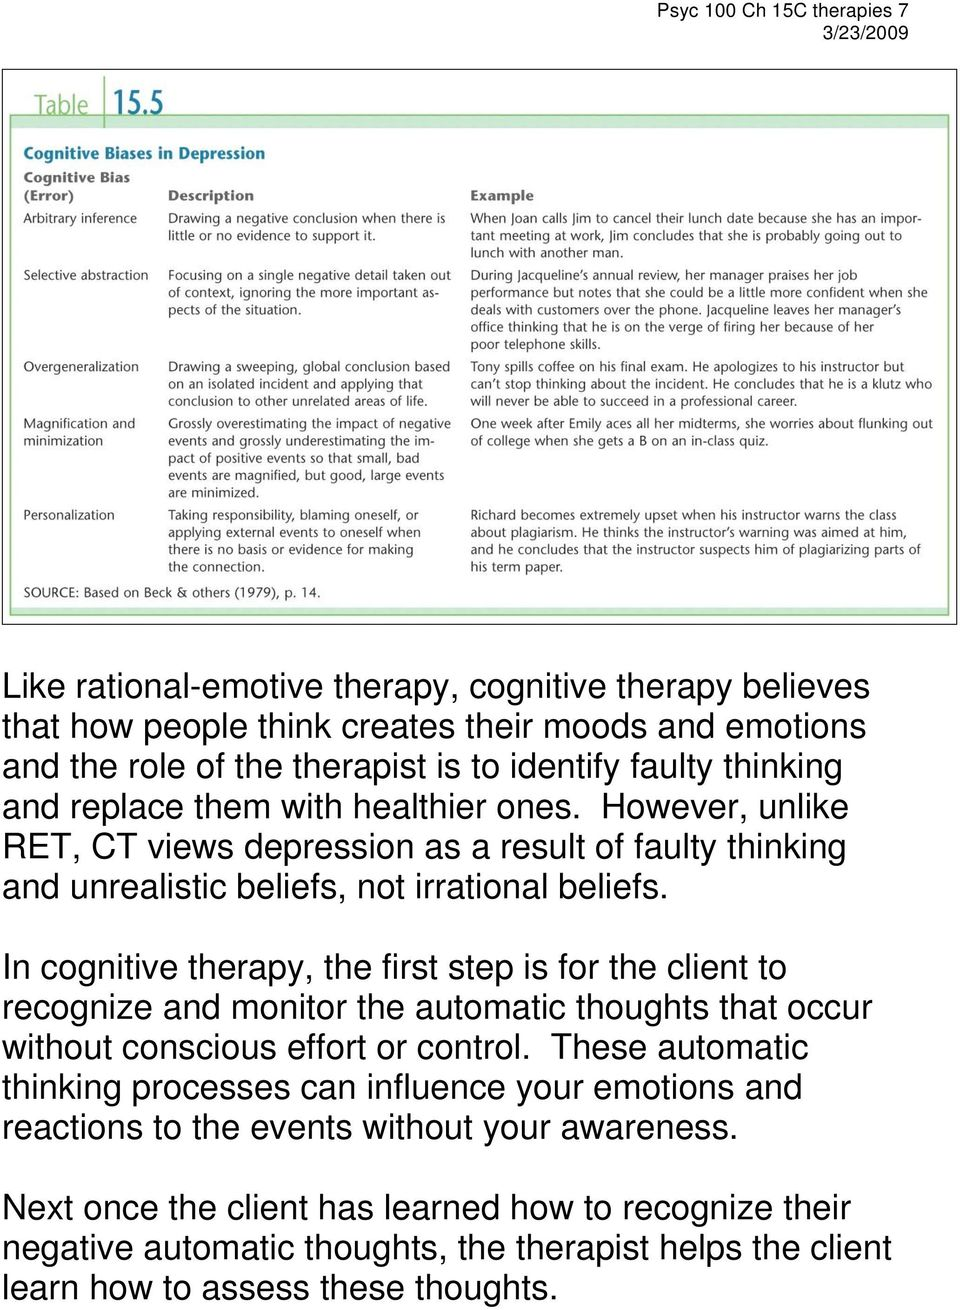 In cognitive therapy, the first step is for the client to recognize and monitor the automatic thoughts that occur without conscious effort or control.